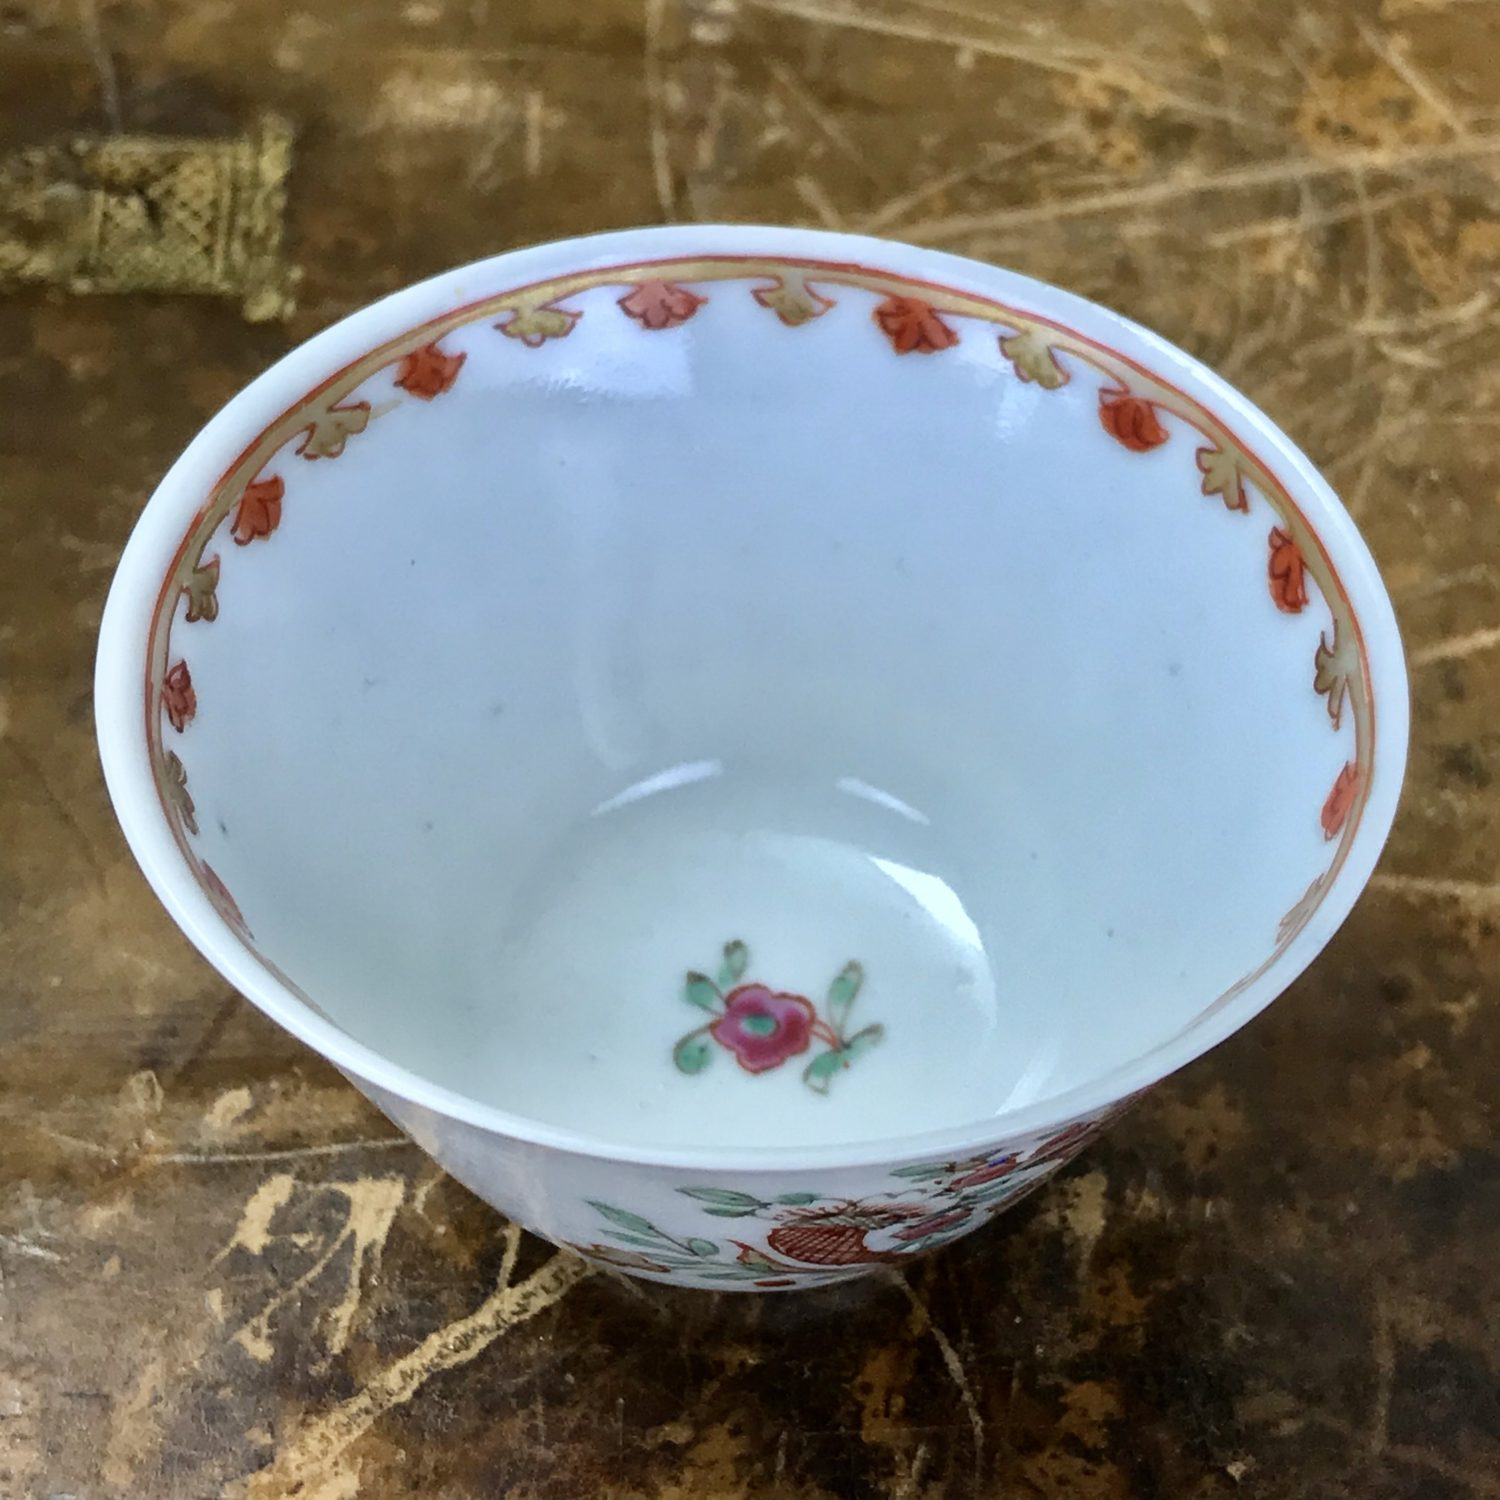 C18th Chinese Export Porcelain Teabowl, Dutch Decorated.